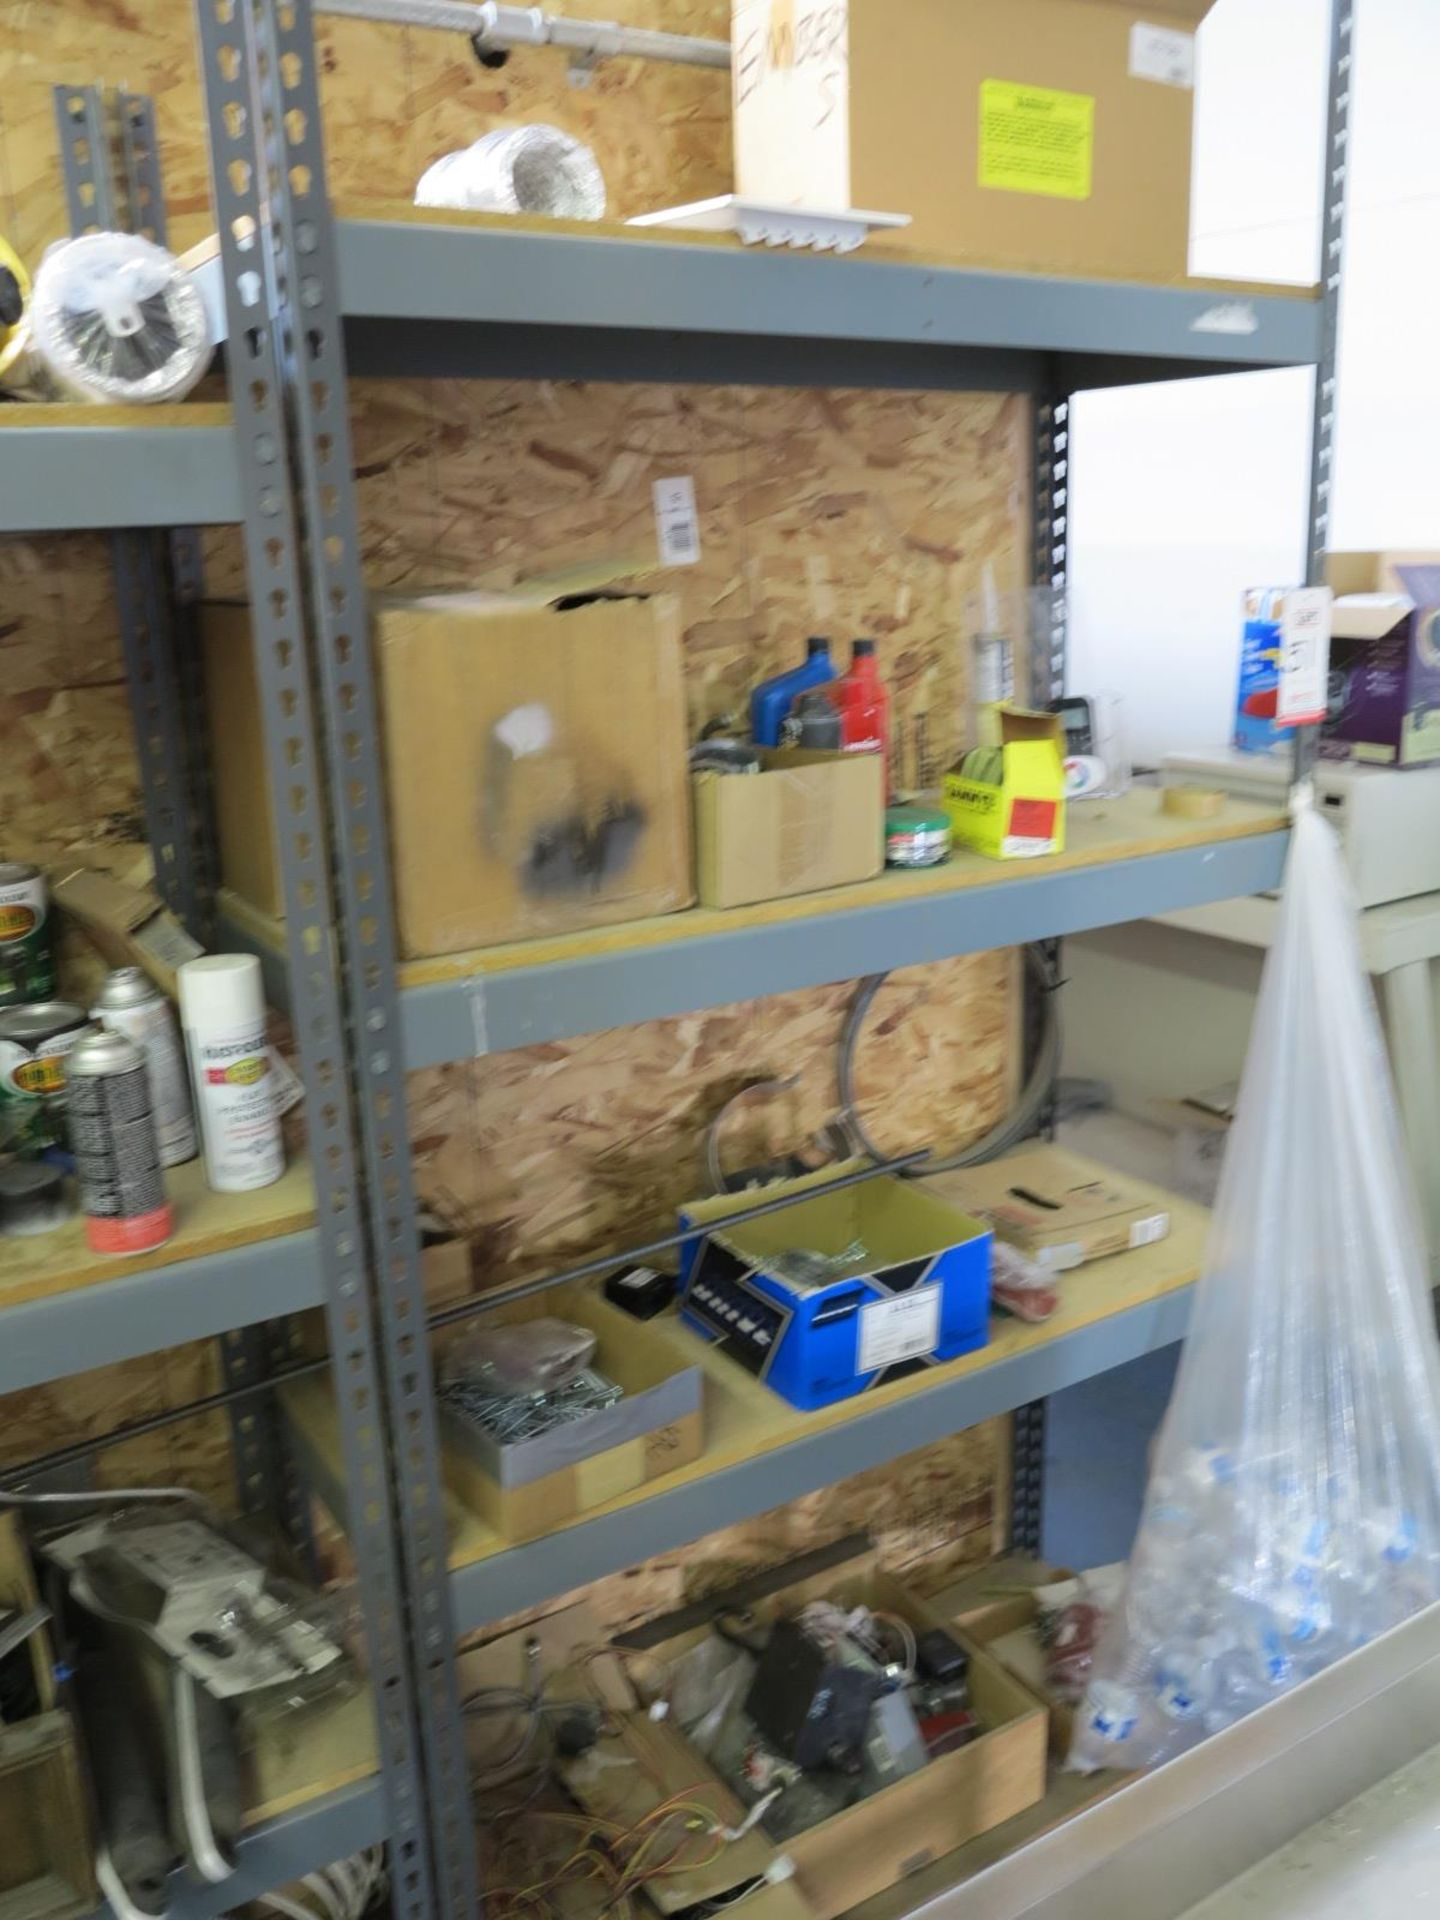 LOT - CONTENTS OF SHELVES - Image 2 of 2